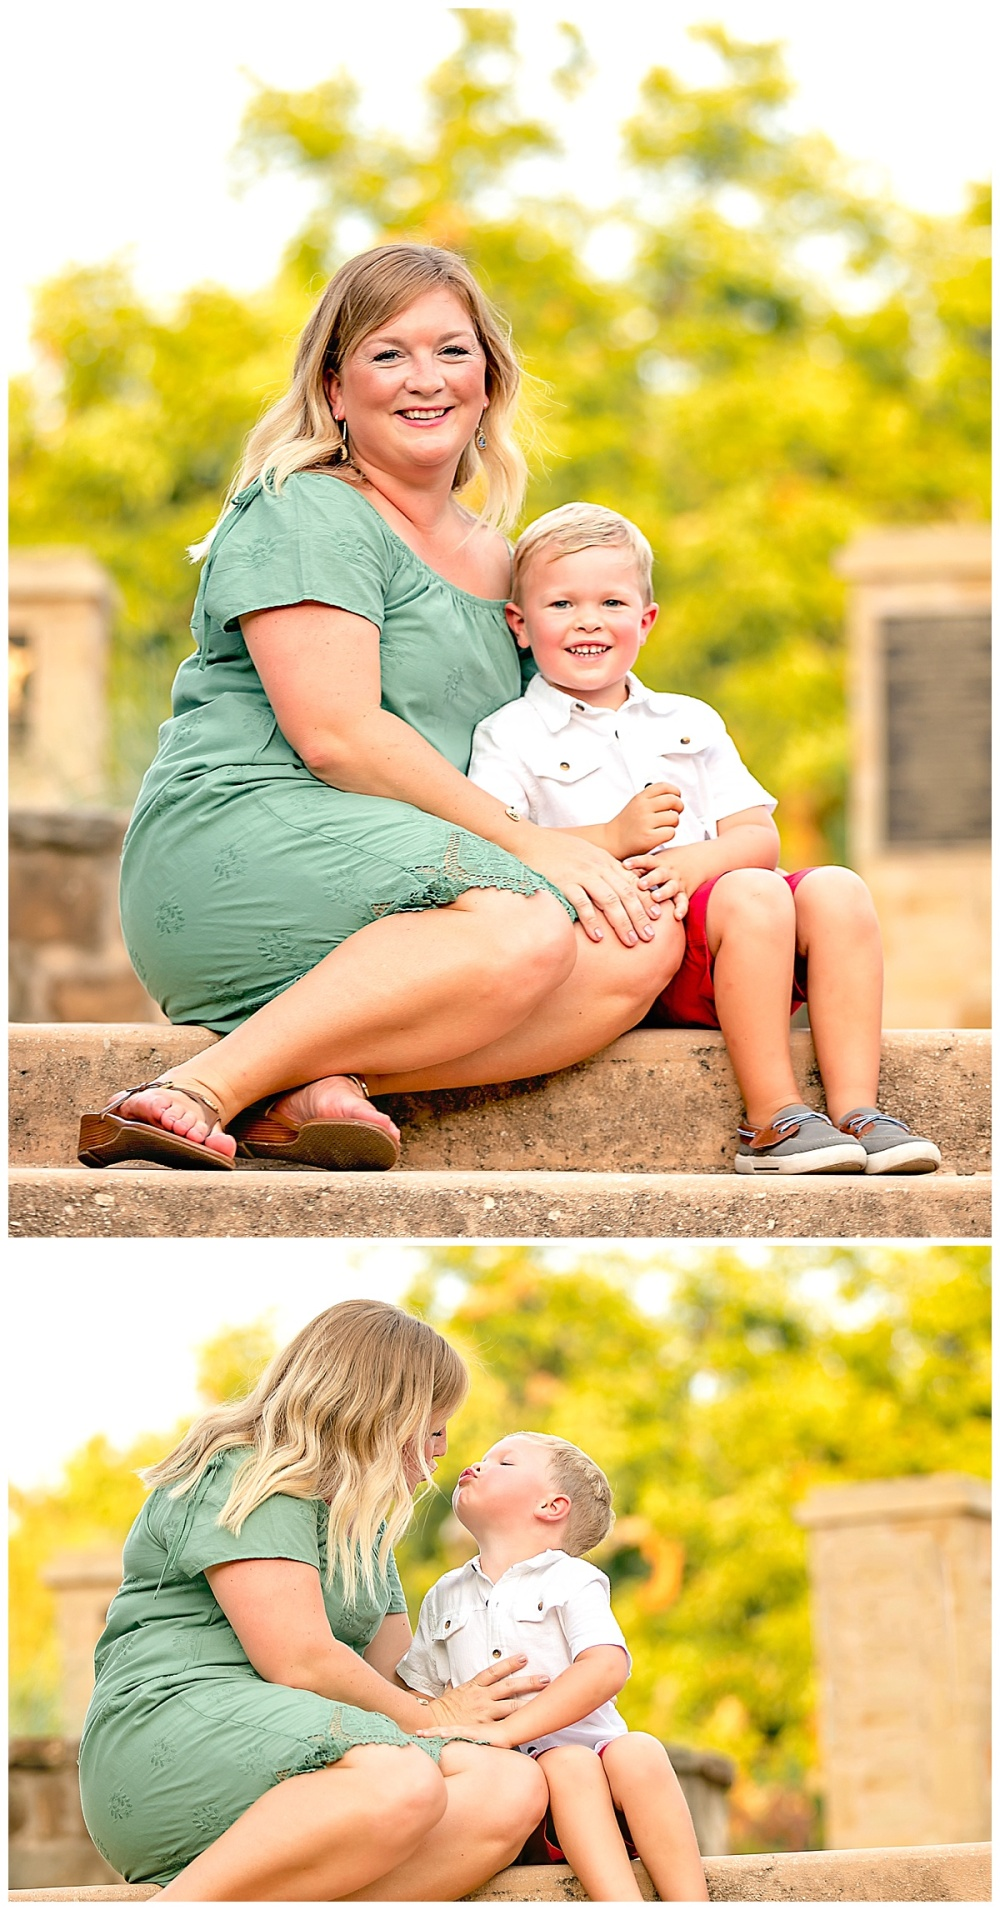 Carly-Barton-Photography-Family-Photos-Walnut-Springs-Park-Seguin-Texas-Pierdolla-Birthday_0007.jpg